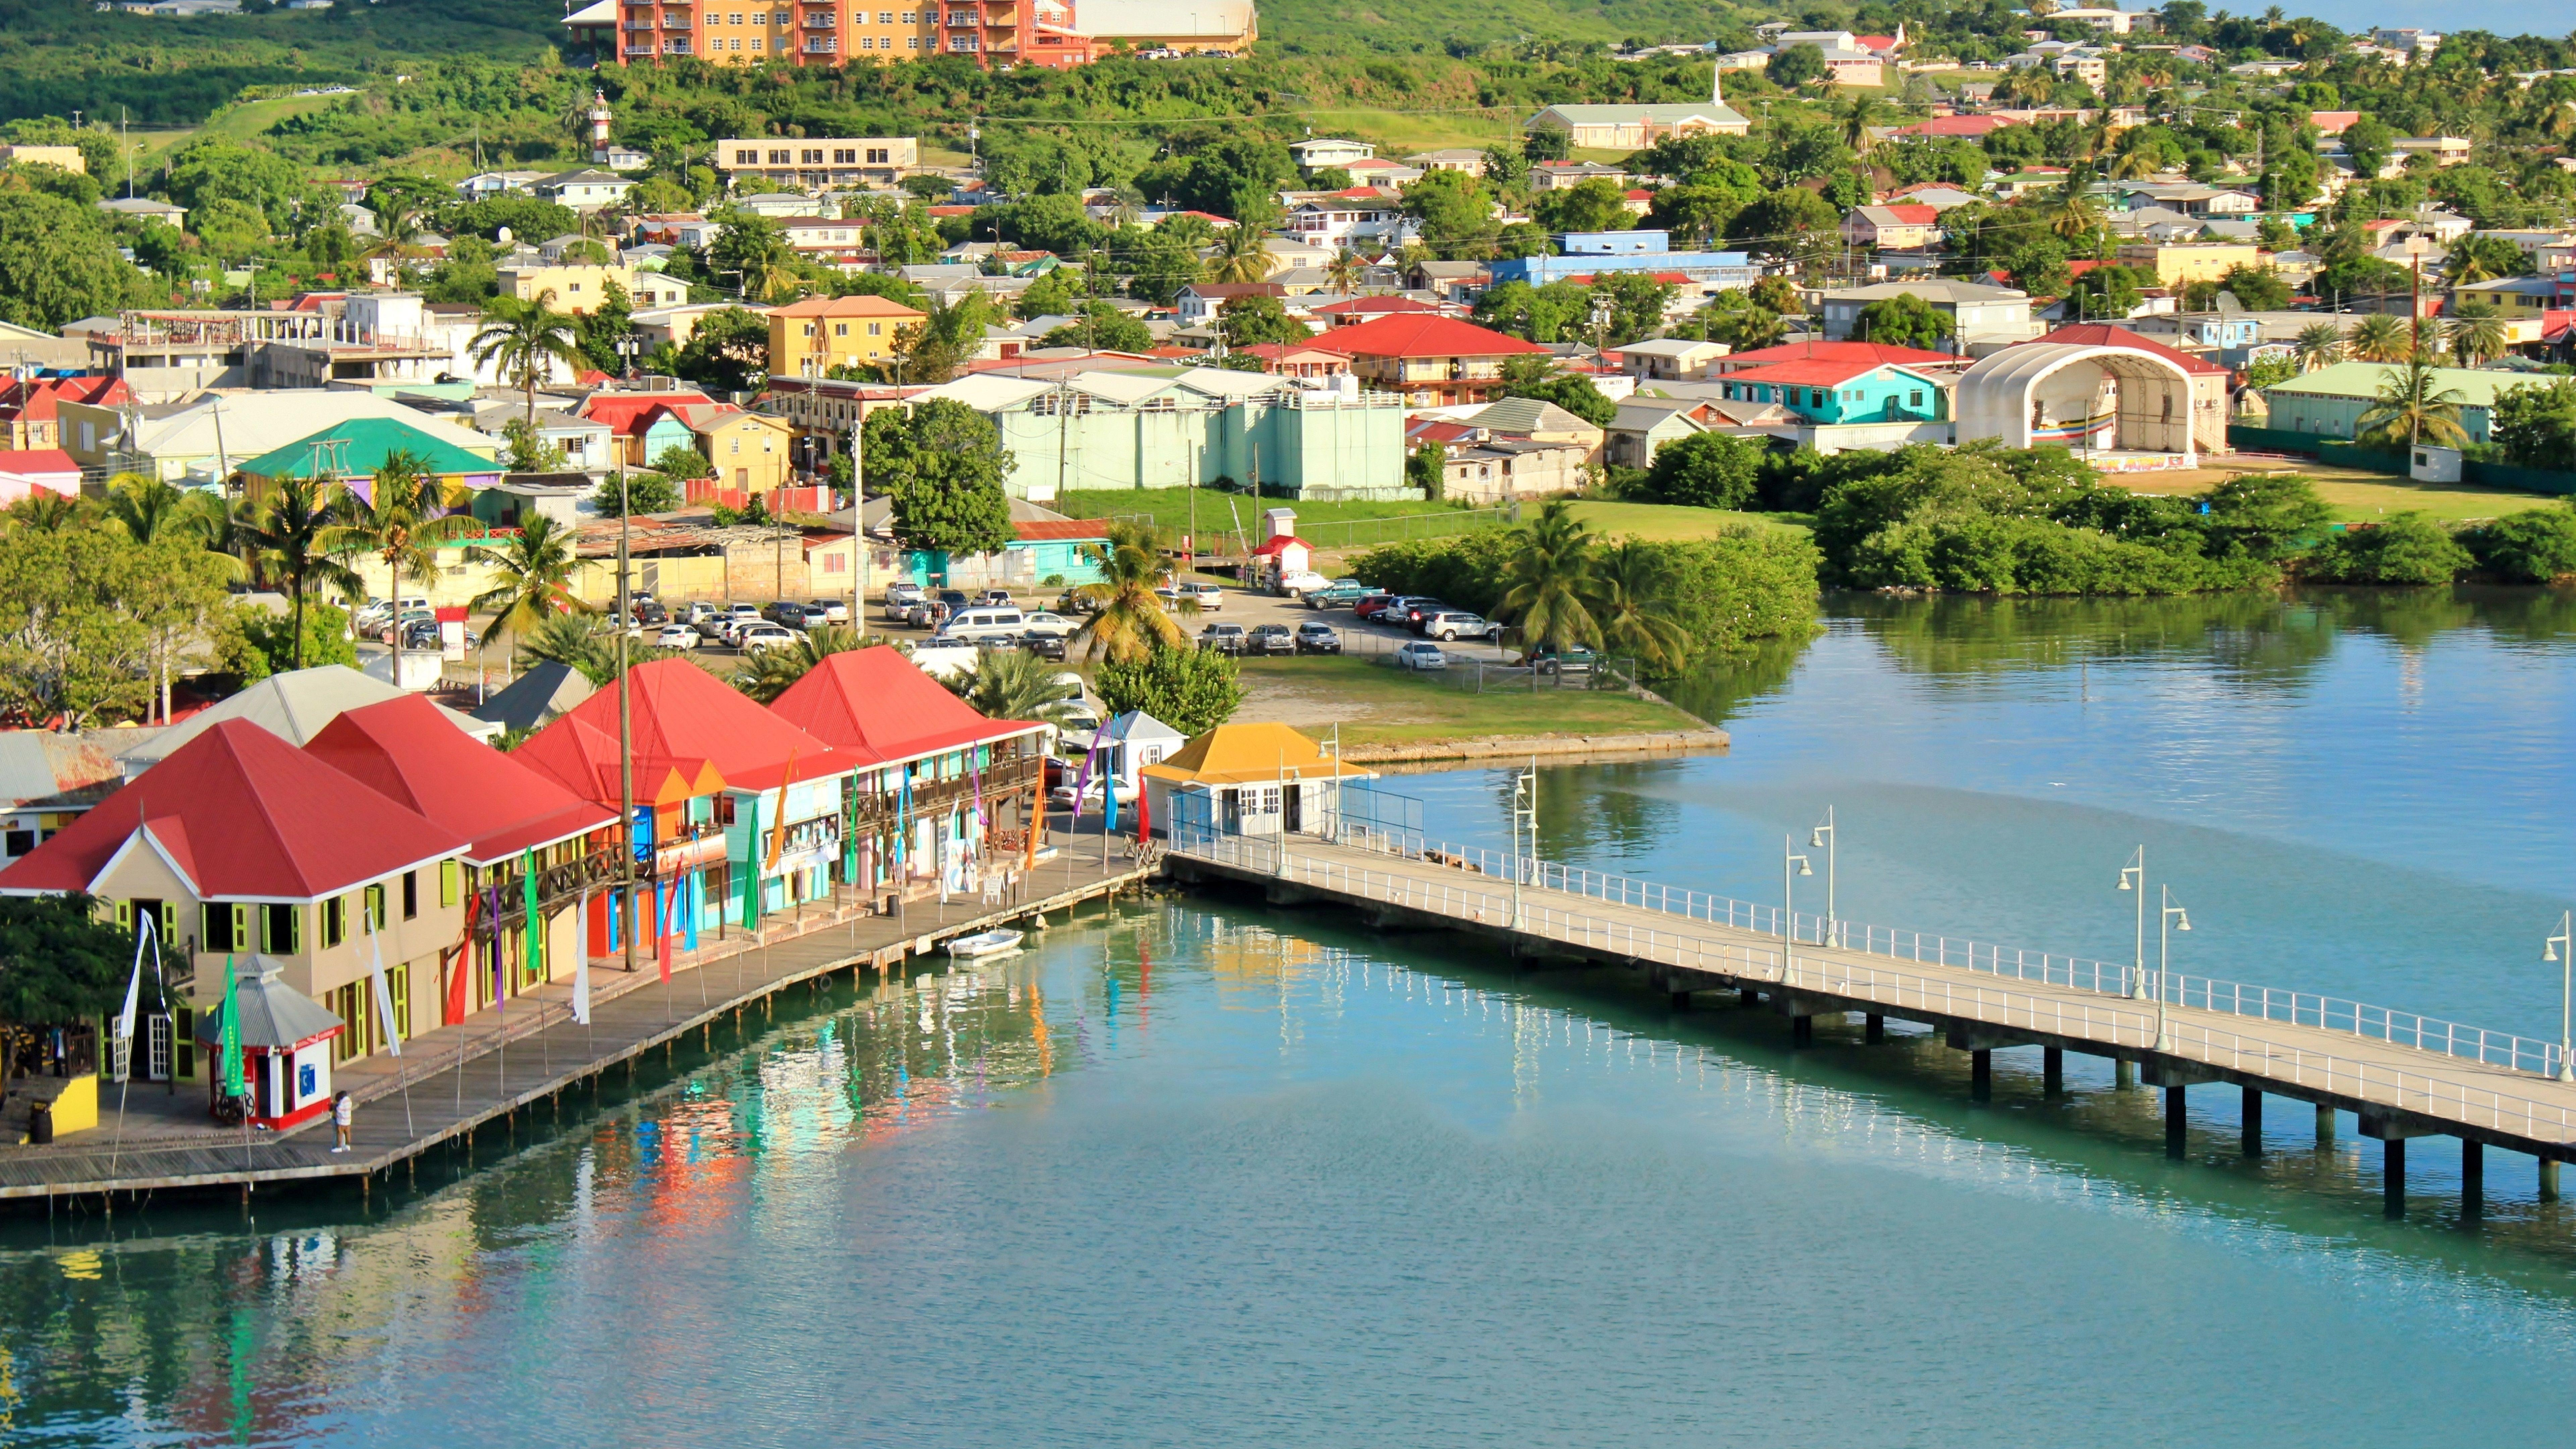 St.Johns Antigua and Barbuda 8K Wallpaper | Wallpapers 4K 5K 8K